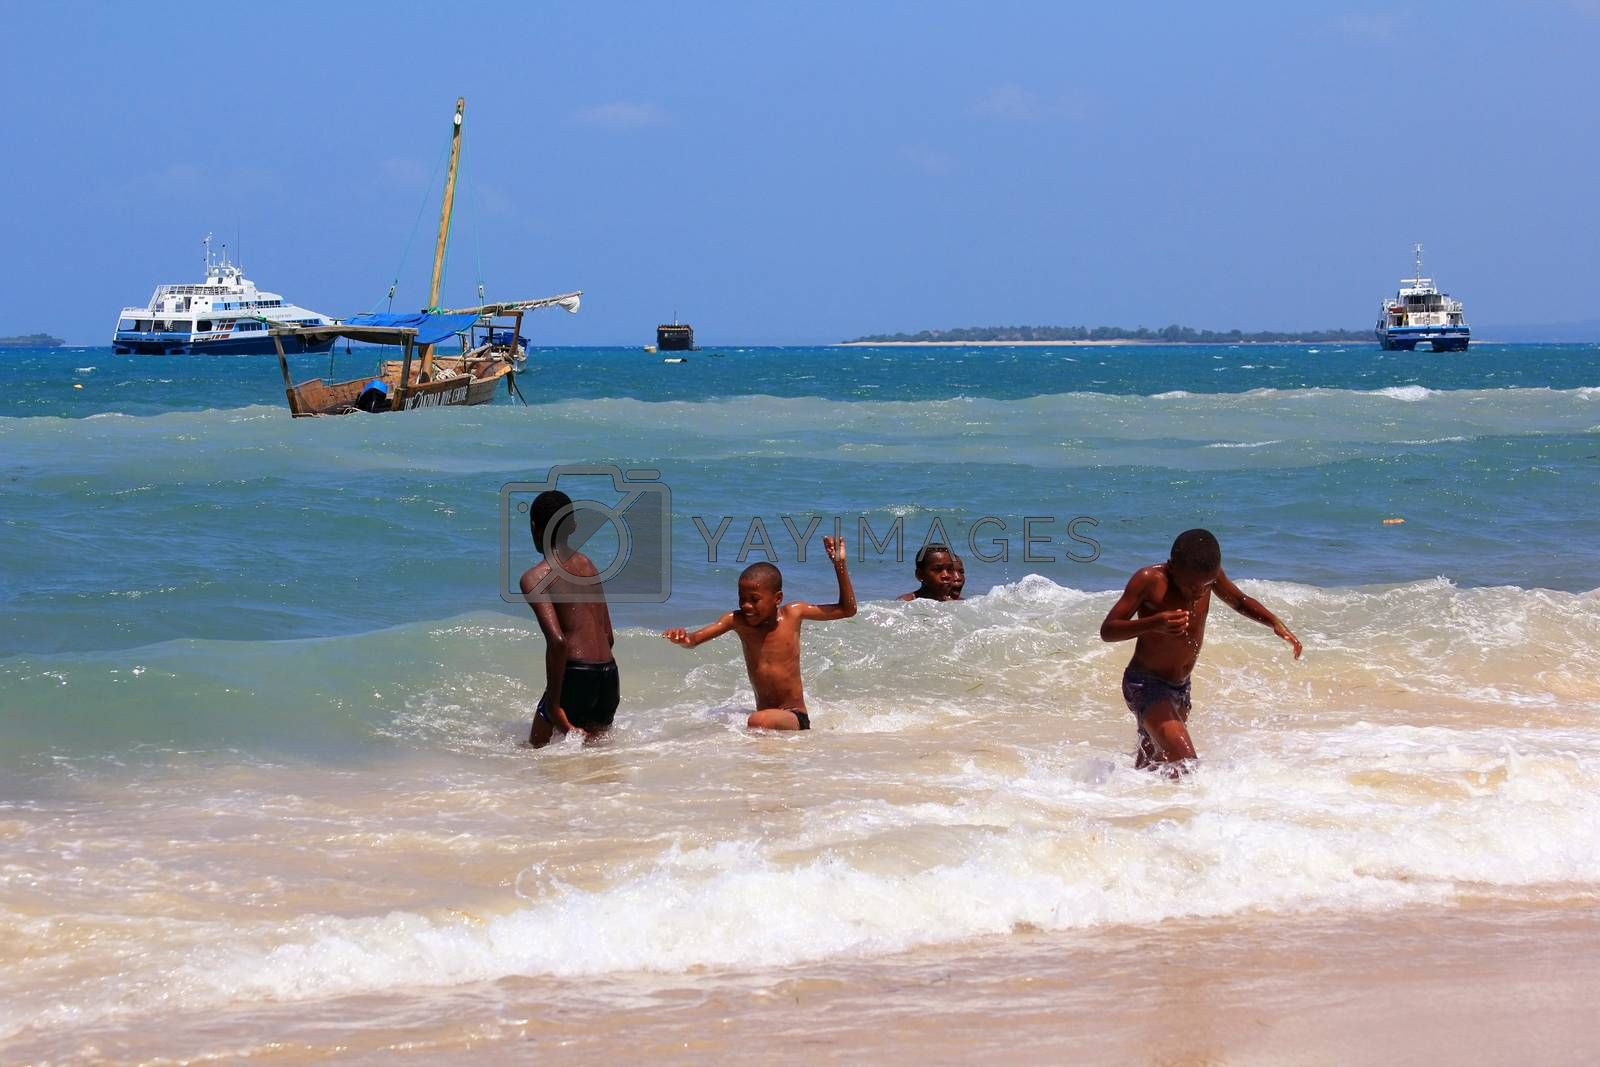 Zanzibar, Tanzania - December 30, 2015: Group of kids playing in the water on the beach of Stone Town. The capital of Zanzibar.